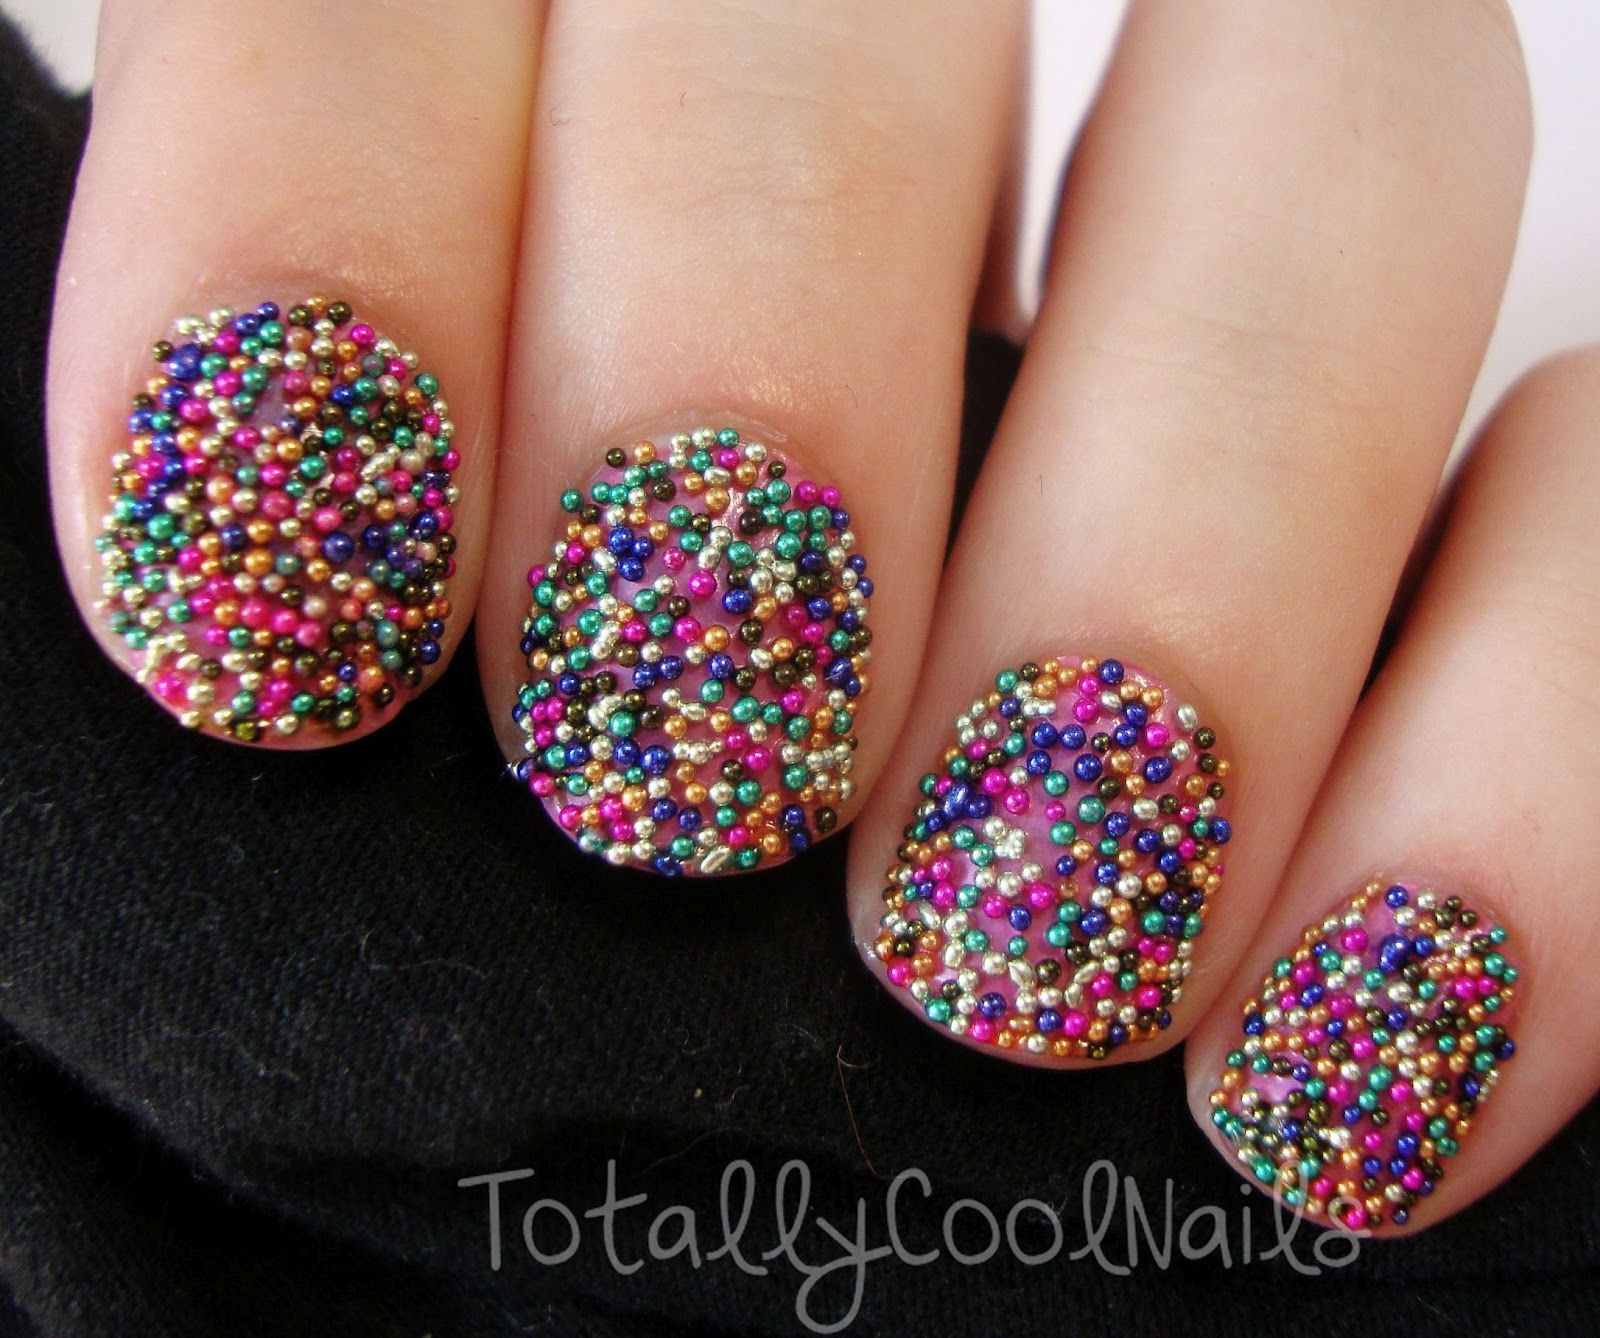 Reindeer dust free image nail art collection for women on